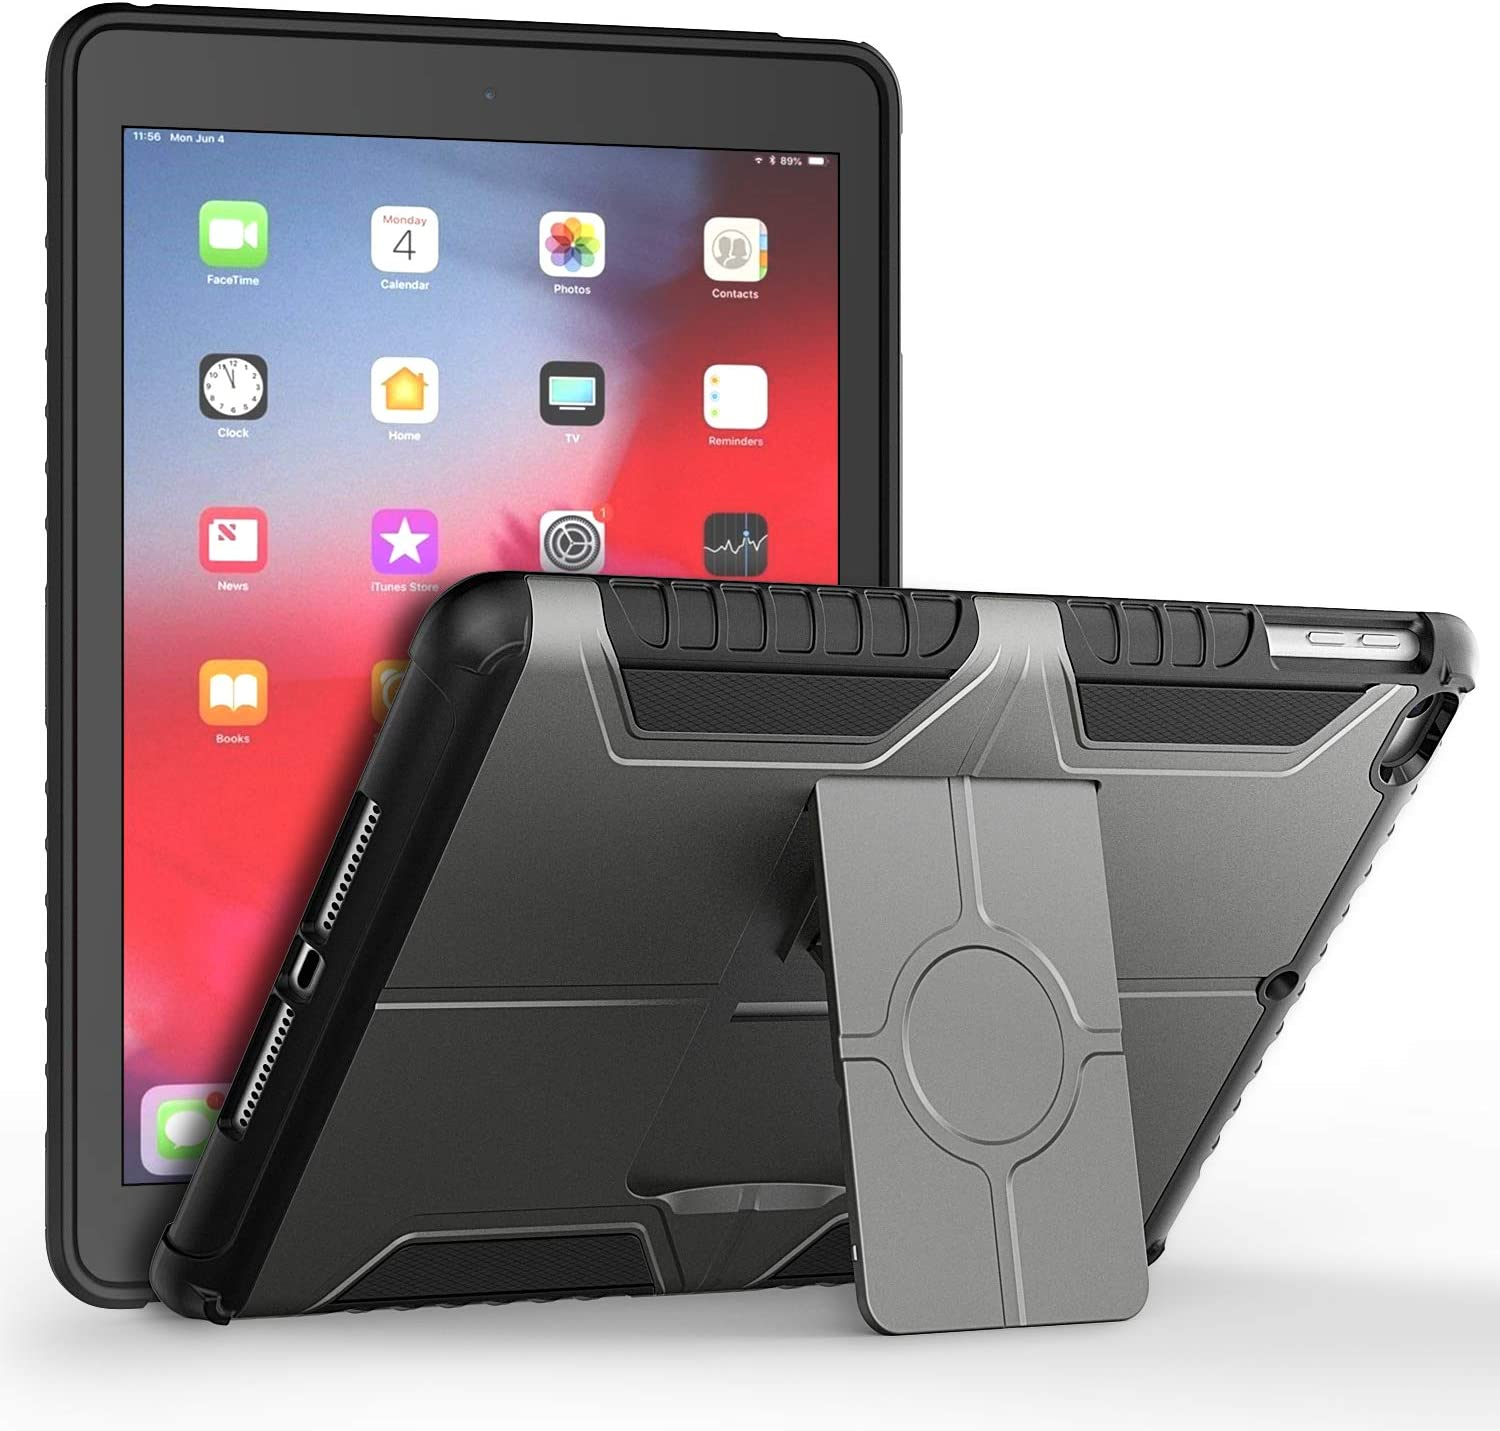 JETech Case for iPad 9.7-Inch 6th/5th Generation, 2018/2017 Model, Dual Layer Design Protective Cover, Grey